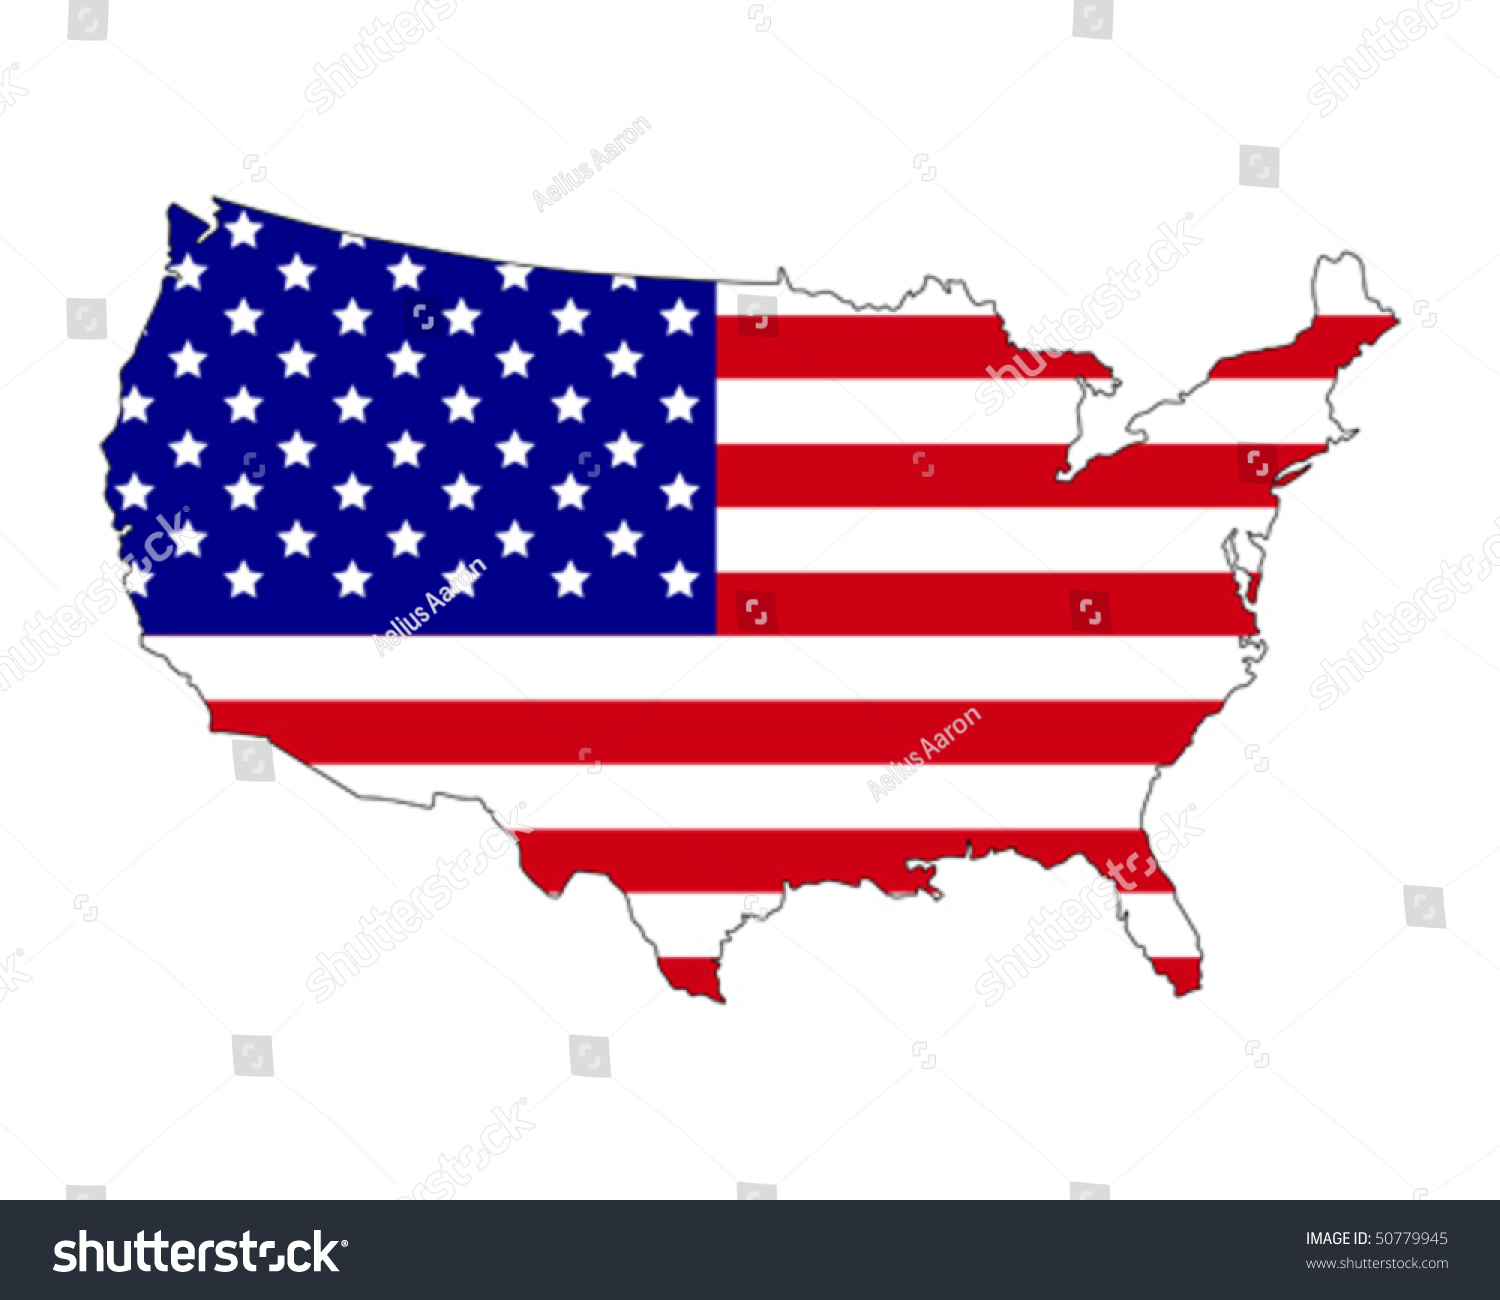 Map Usa Filled Flag Country Stock Vector Shutterstock - Us map with glag